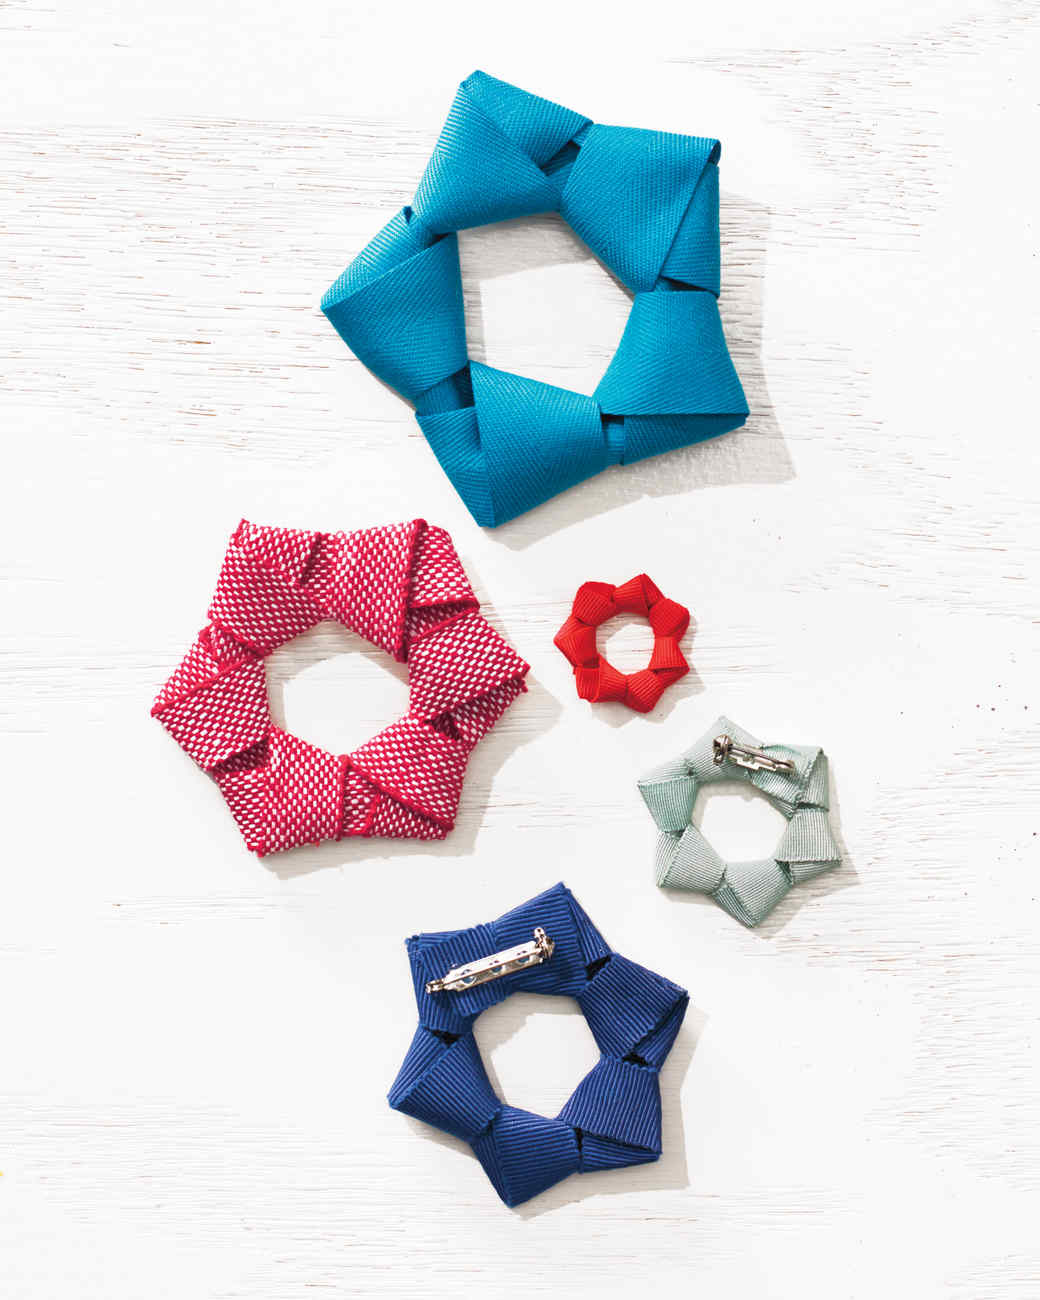 Star-Spangled Style: American Flag-Inspired Ribbon Pins